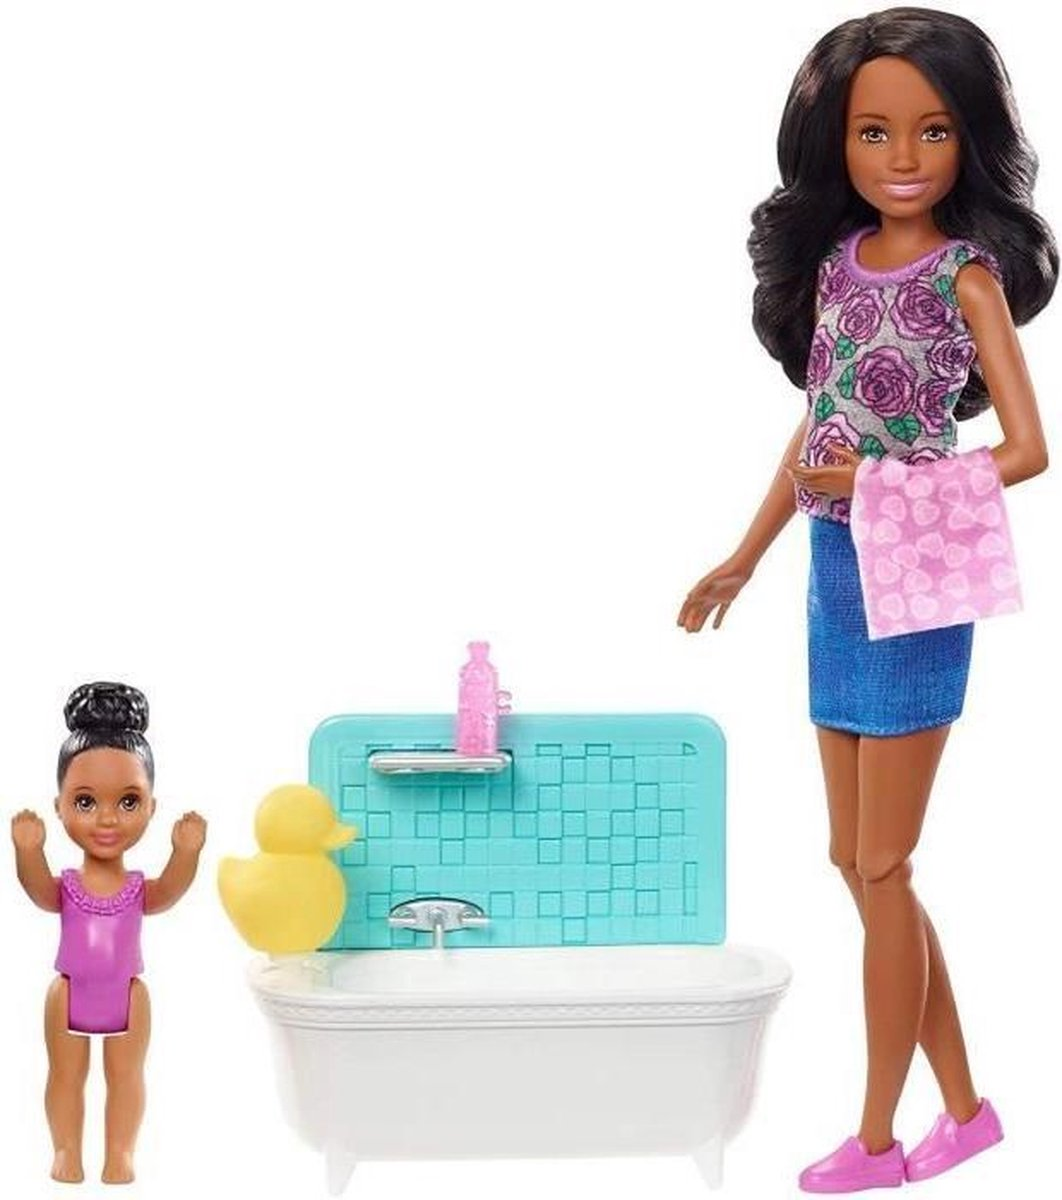 BARBIE Babysitter Bath Time Brown Skipper - FXH06 - Mannequin Doll Box - 3 jaar en +